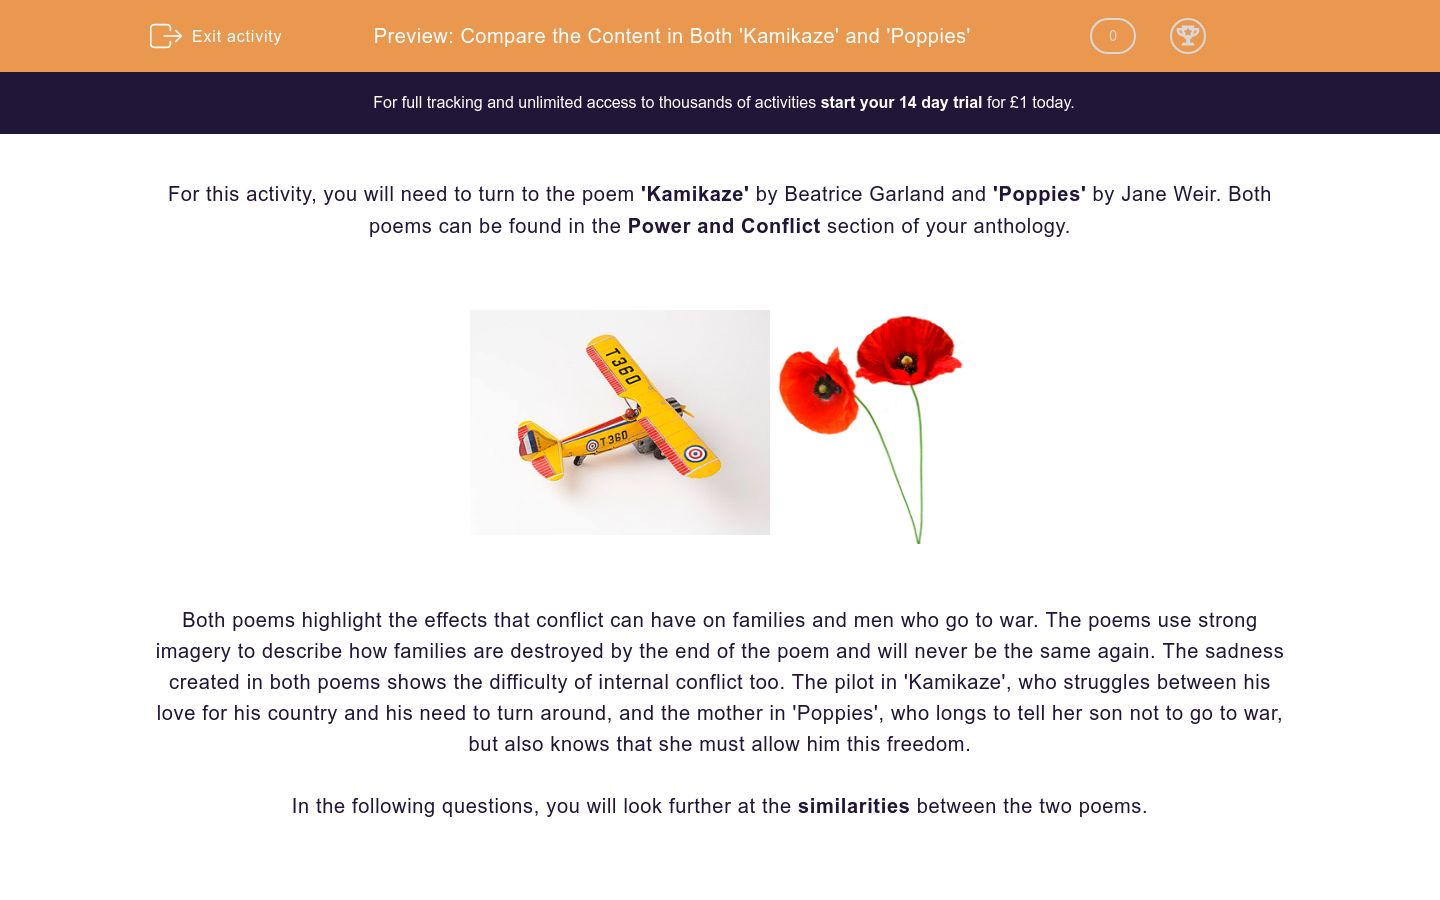 'Compare the Content in Both 'Kamikaze' and 'Poppies'' worksheet